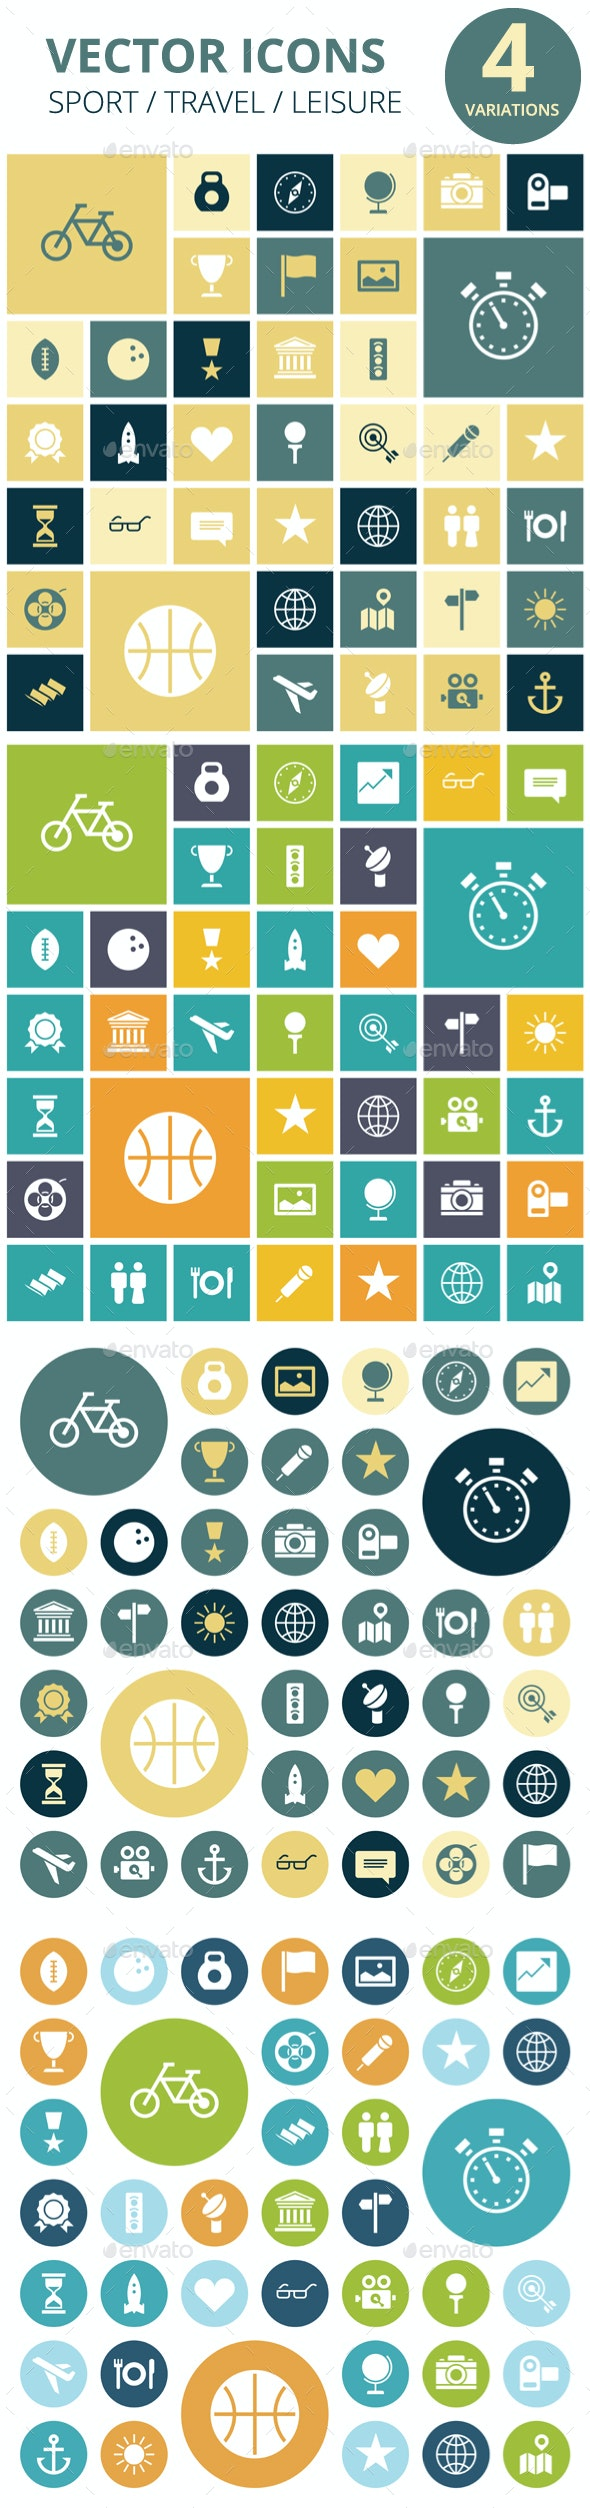 Flat Design Icons for Travel, Sport and Leisure - Miscellaneous Icons